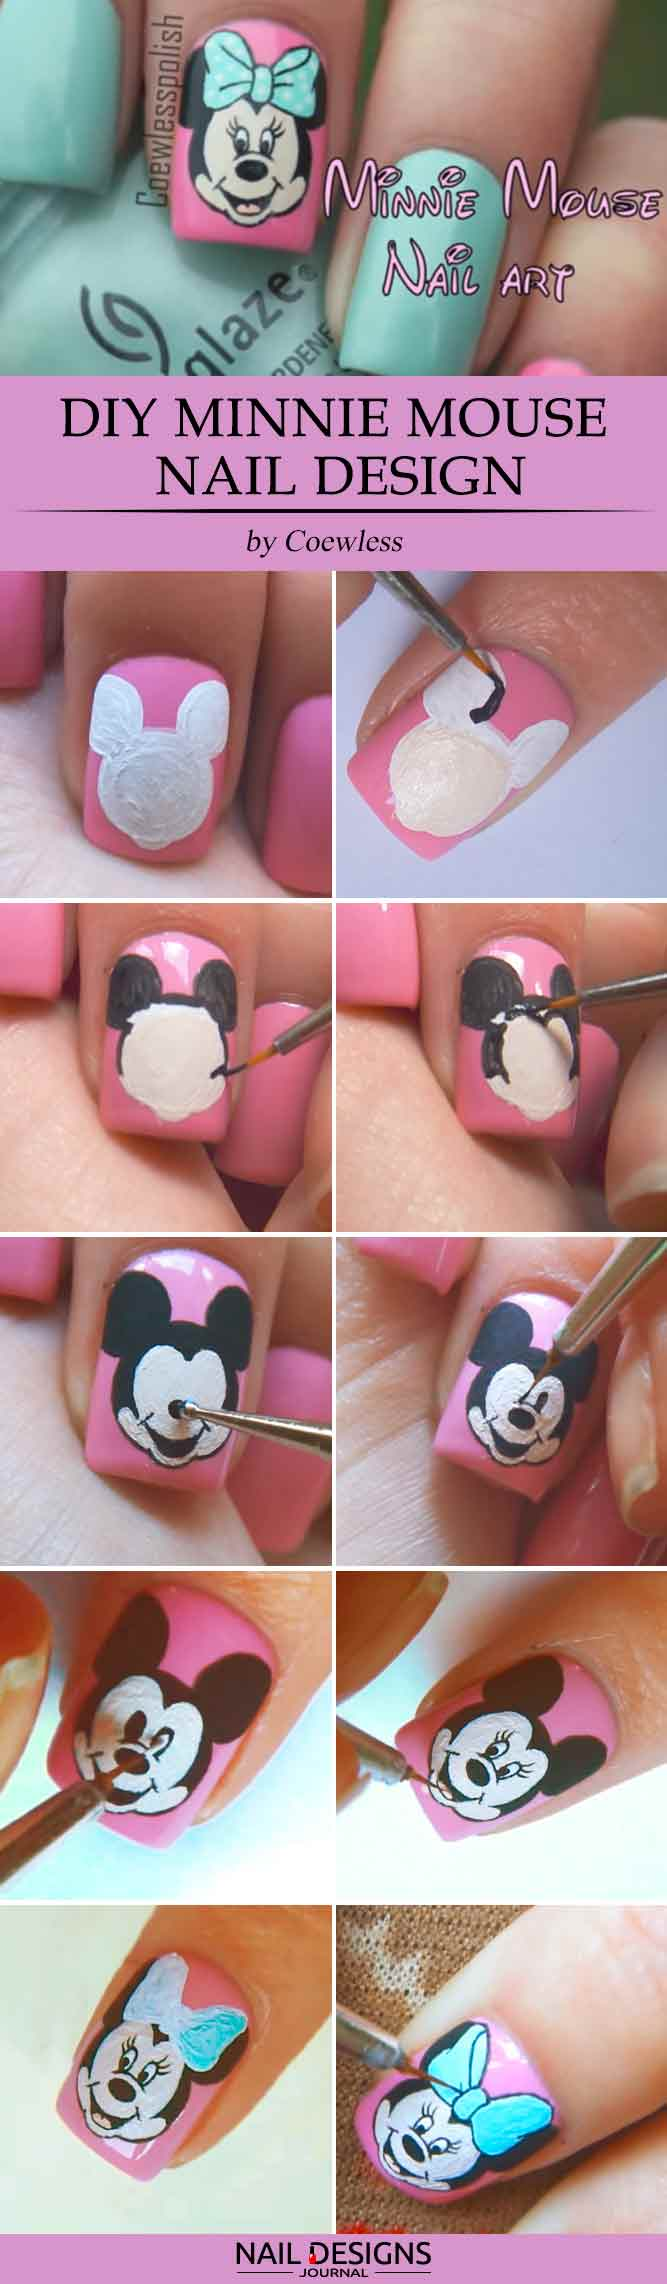 DIY Minnie Mouse Nail Design